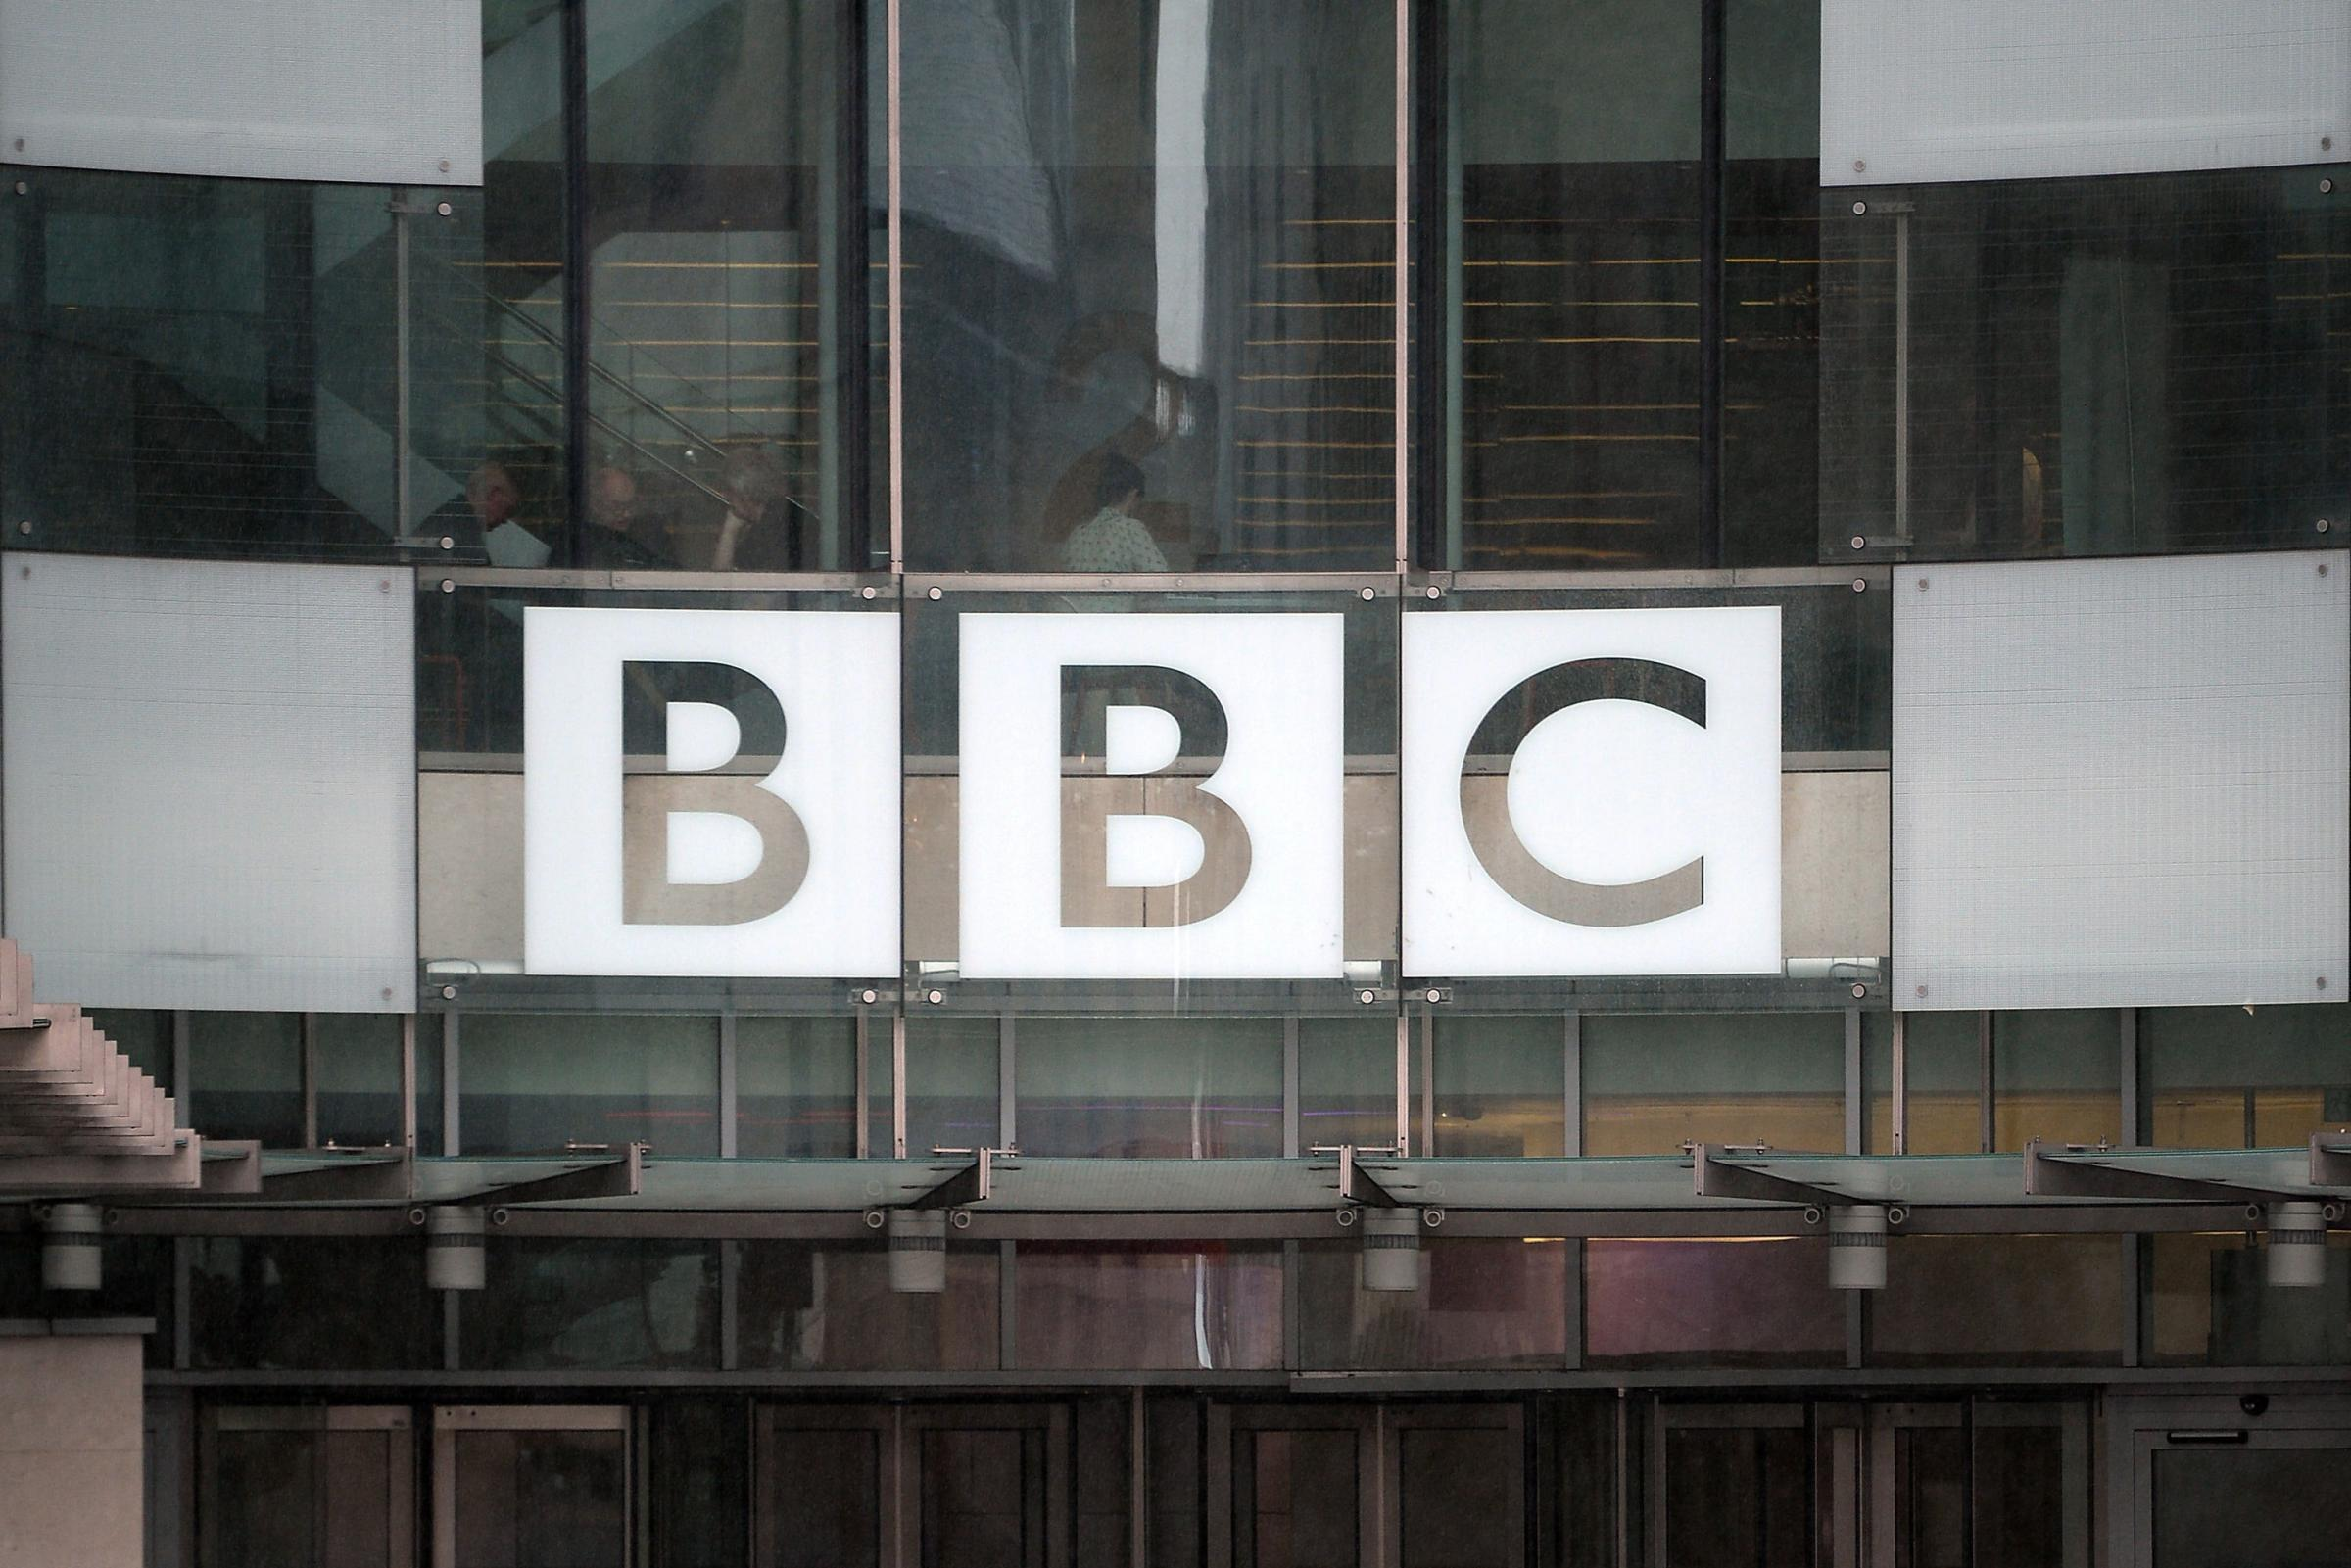 BBC announces new programmes as part of 'The Big British Asian Summer'